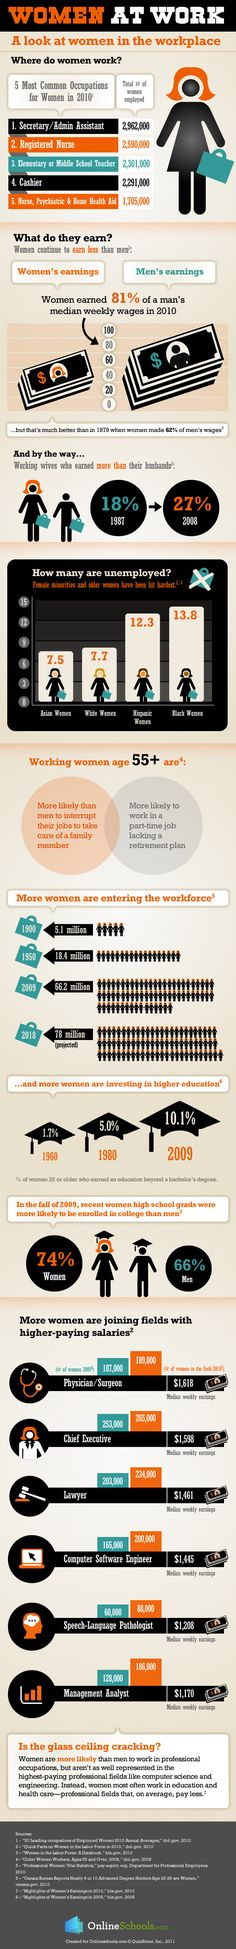 """Infographic: Women in the workplace - there's no excuse for the """"earning less"""" problem, let's get on it."""